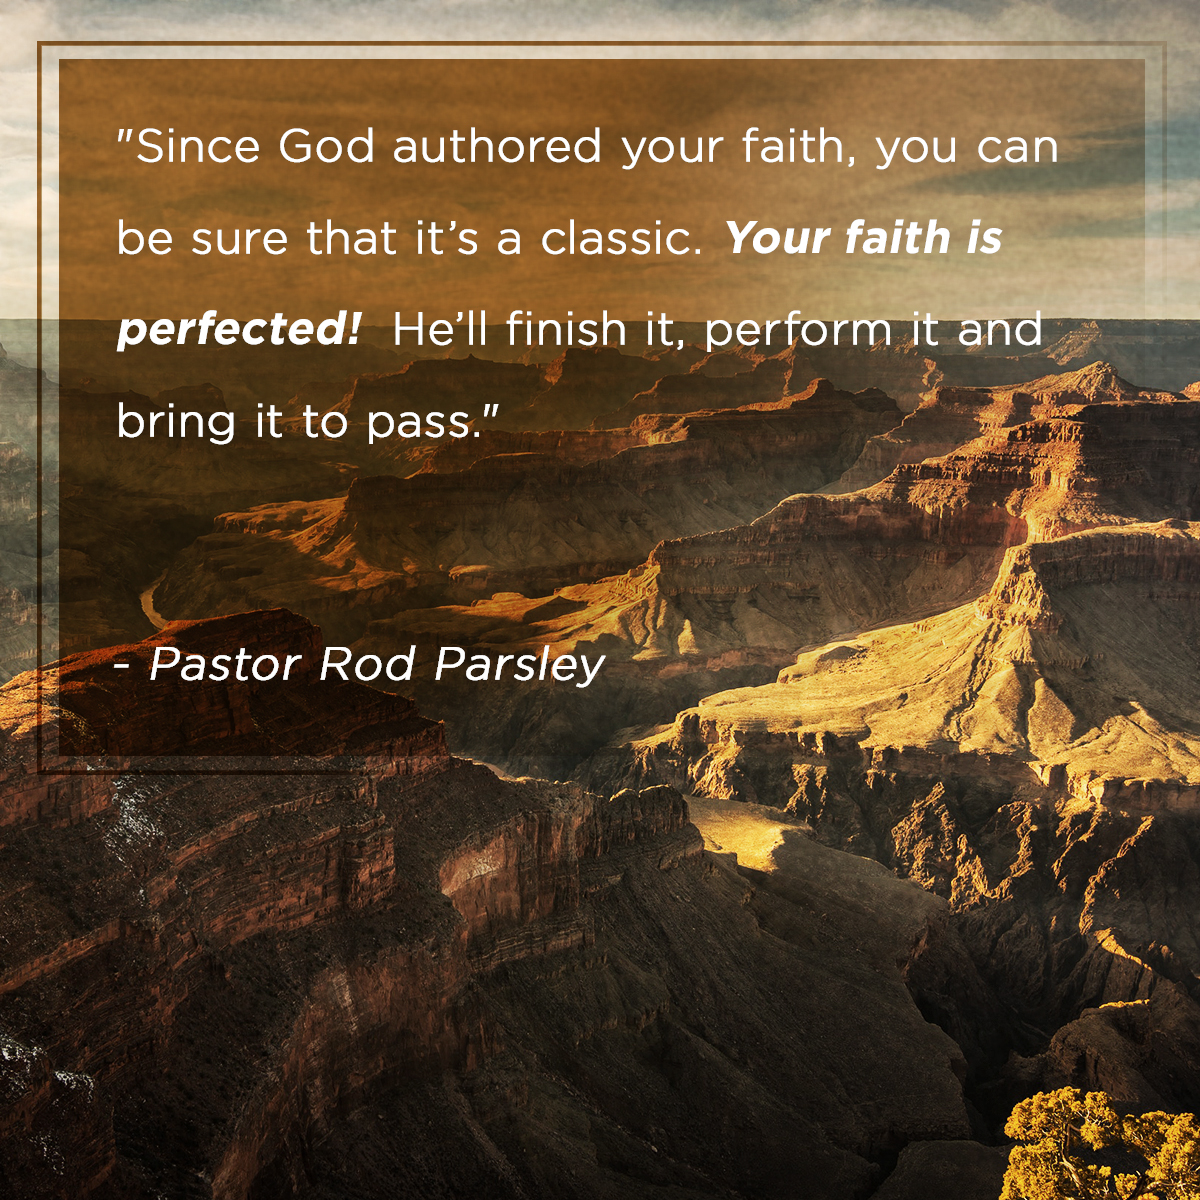 """Since God authored you faith, you can be sure that it's a classic. Your faith is perfected! He'll finish it, perform it and bring it to pass."" – Pastor Rod Parsley"